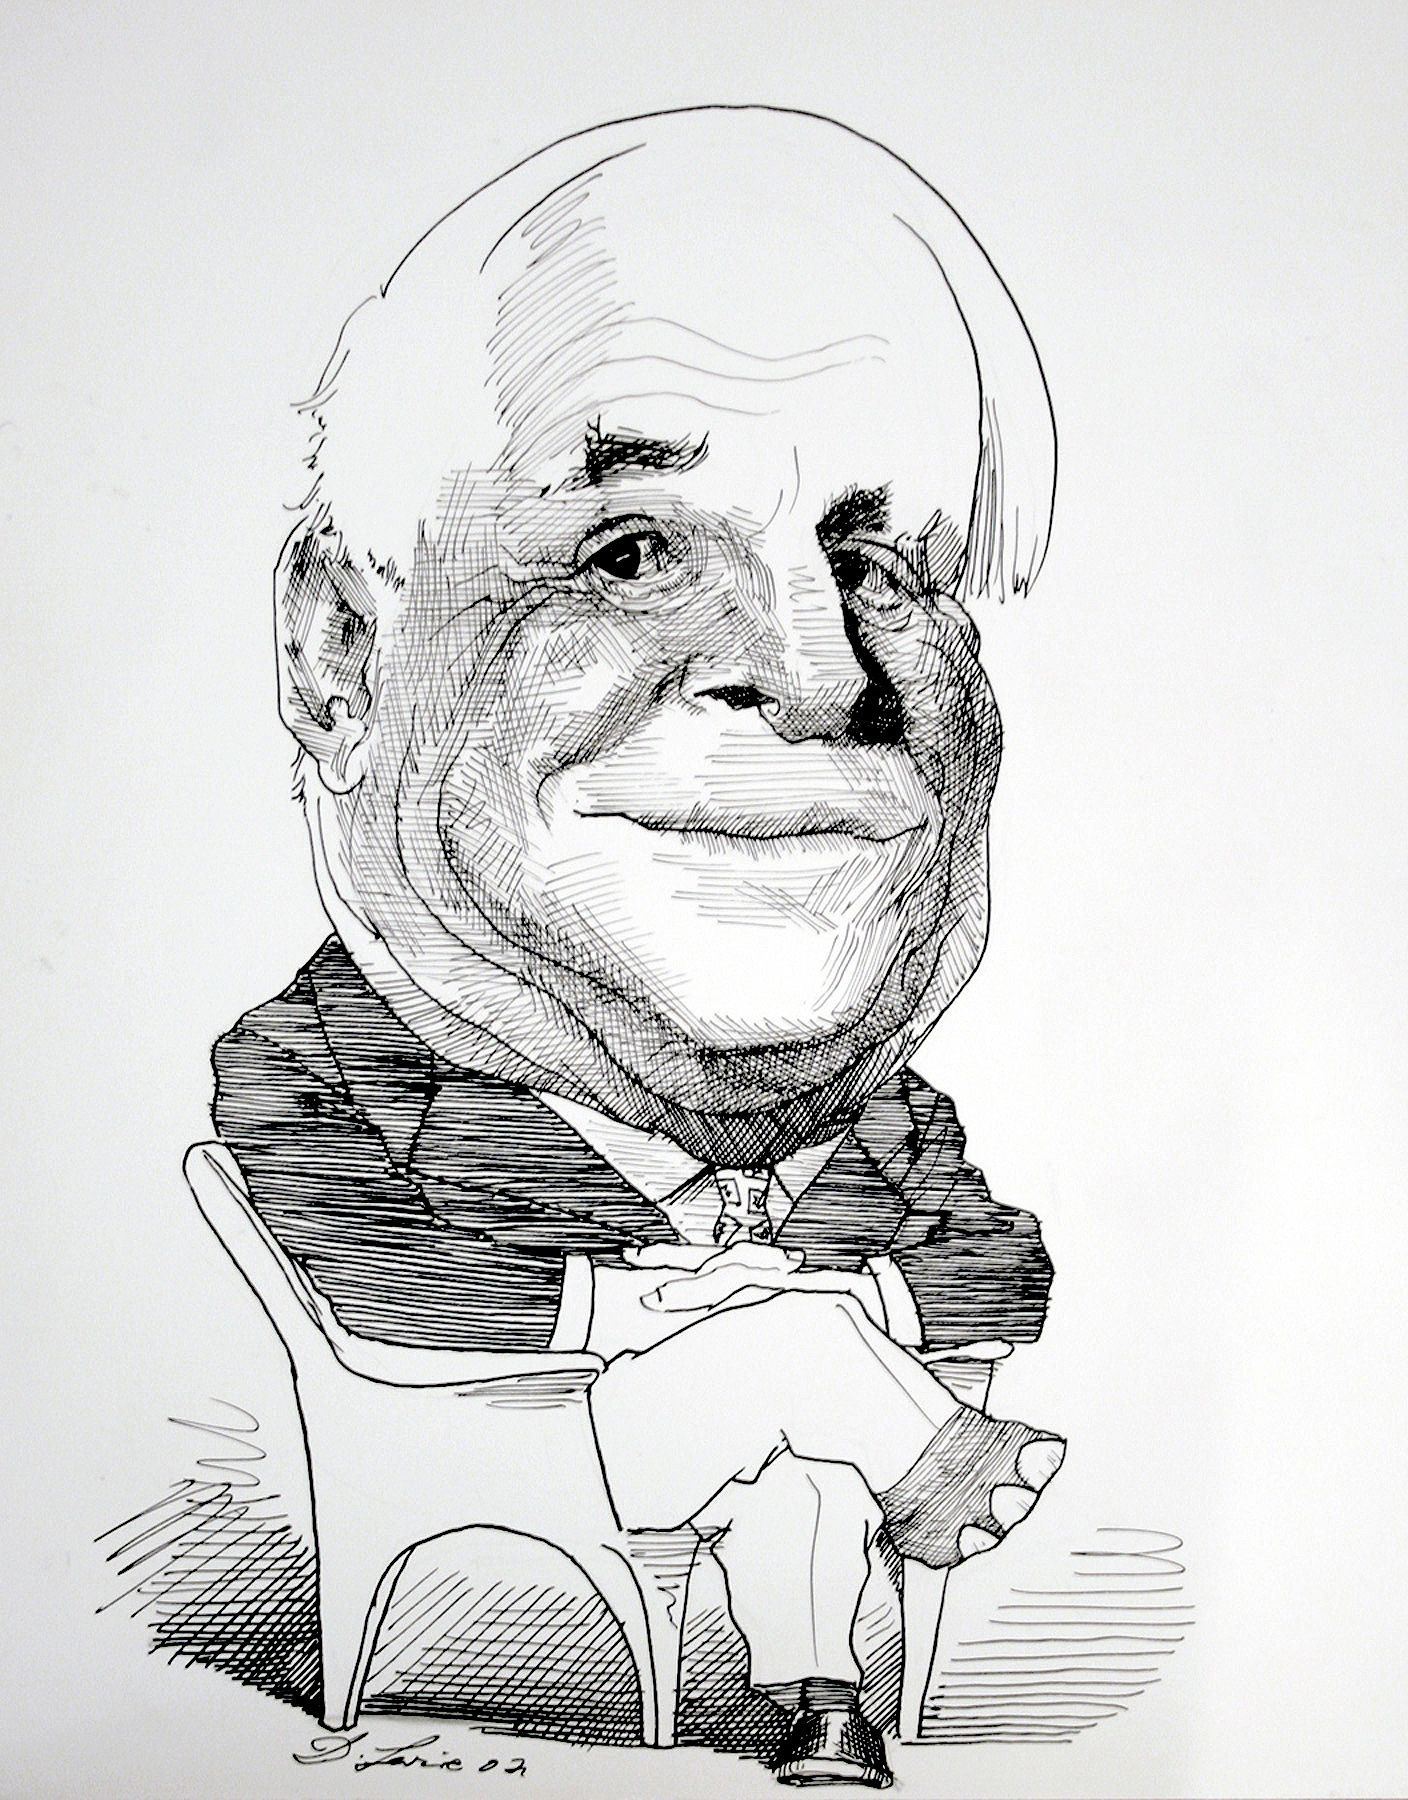 David Levine, Senator John McCain, 2002, ink on paper, 13 3/4 x 11 inches